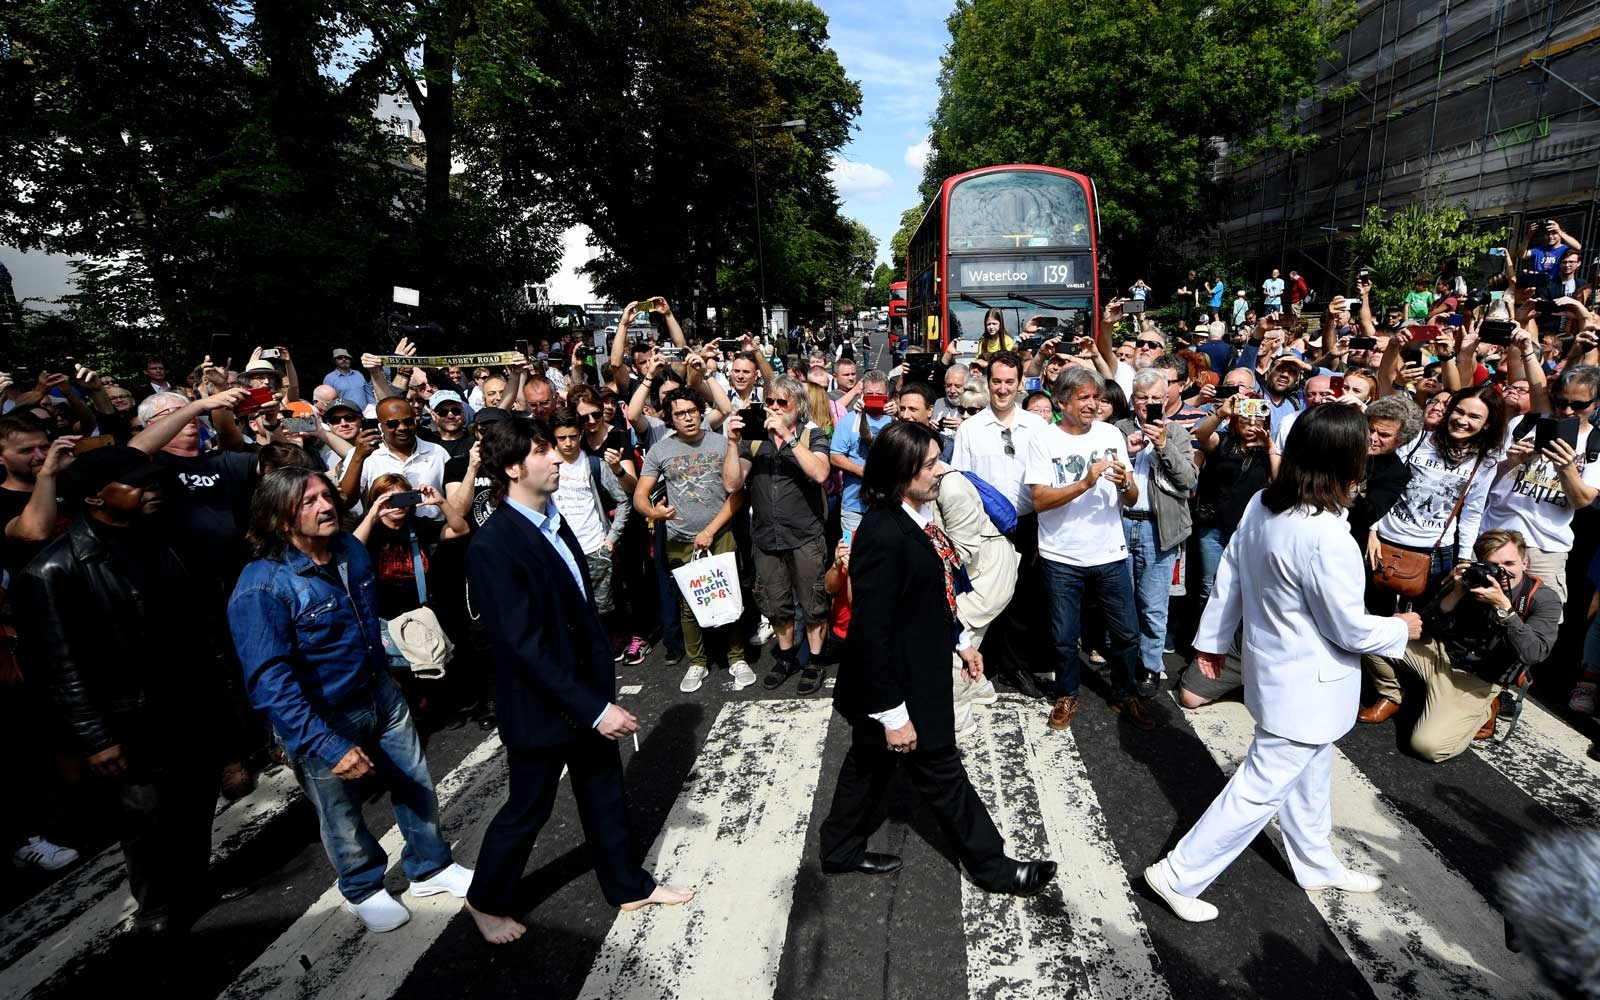 50th Anniversary of Abbey Road, London, UK - 08 Aug 2019